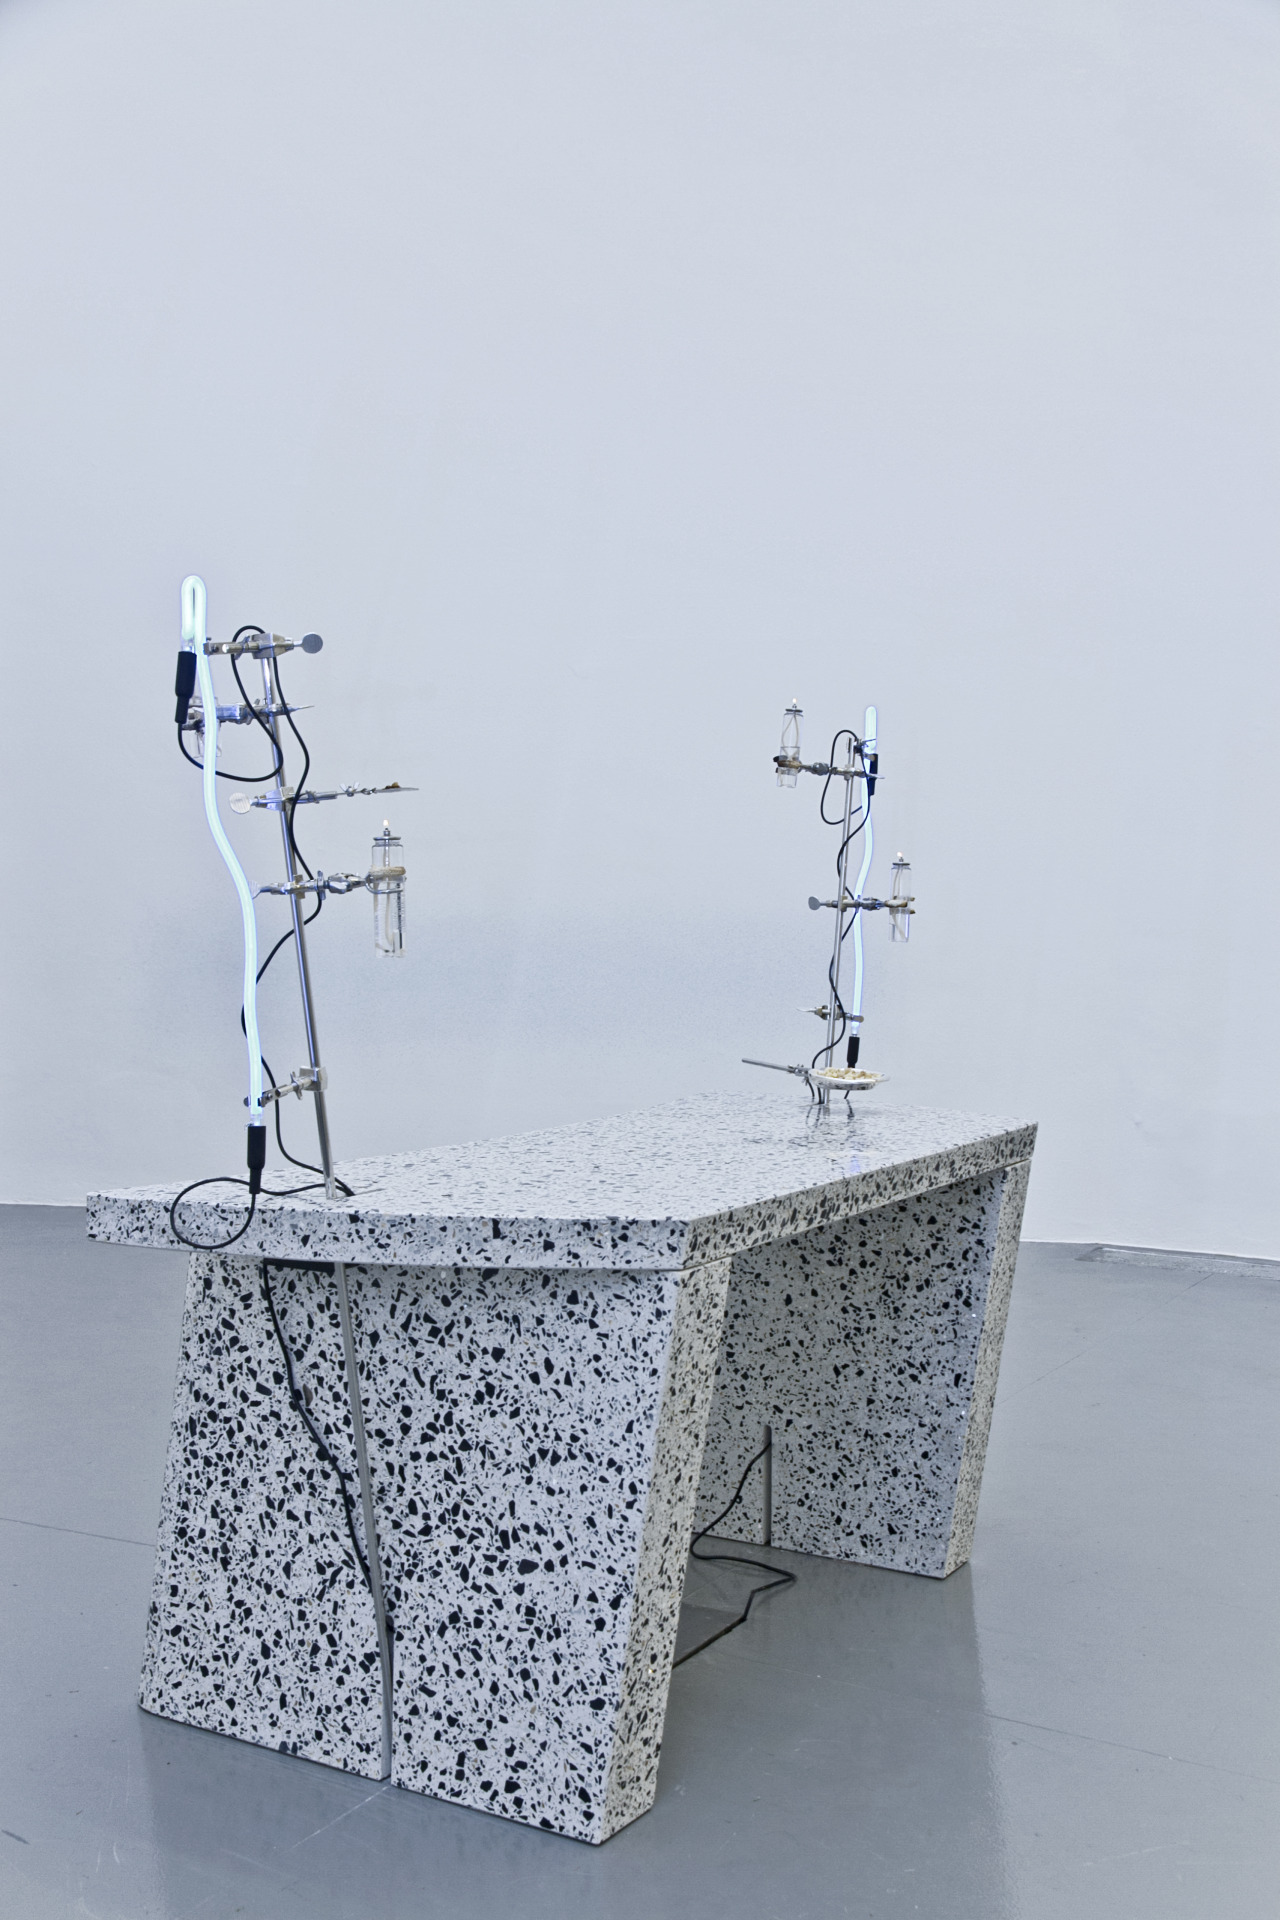 A day dream about the authority of a heavy desk, about other vocations spent behind one ordering certain men around, about domineering and maybe reclining slowly, exhaling, 2014. Terrazzo, stainless steel, laboratory hardware, neon lights, transformers, paraffin lamps, mica, frankincense, sterling silver Tiffany dish. Variable dimensions. Courtesy of the artist.